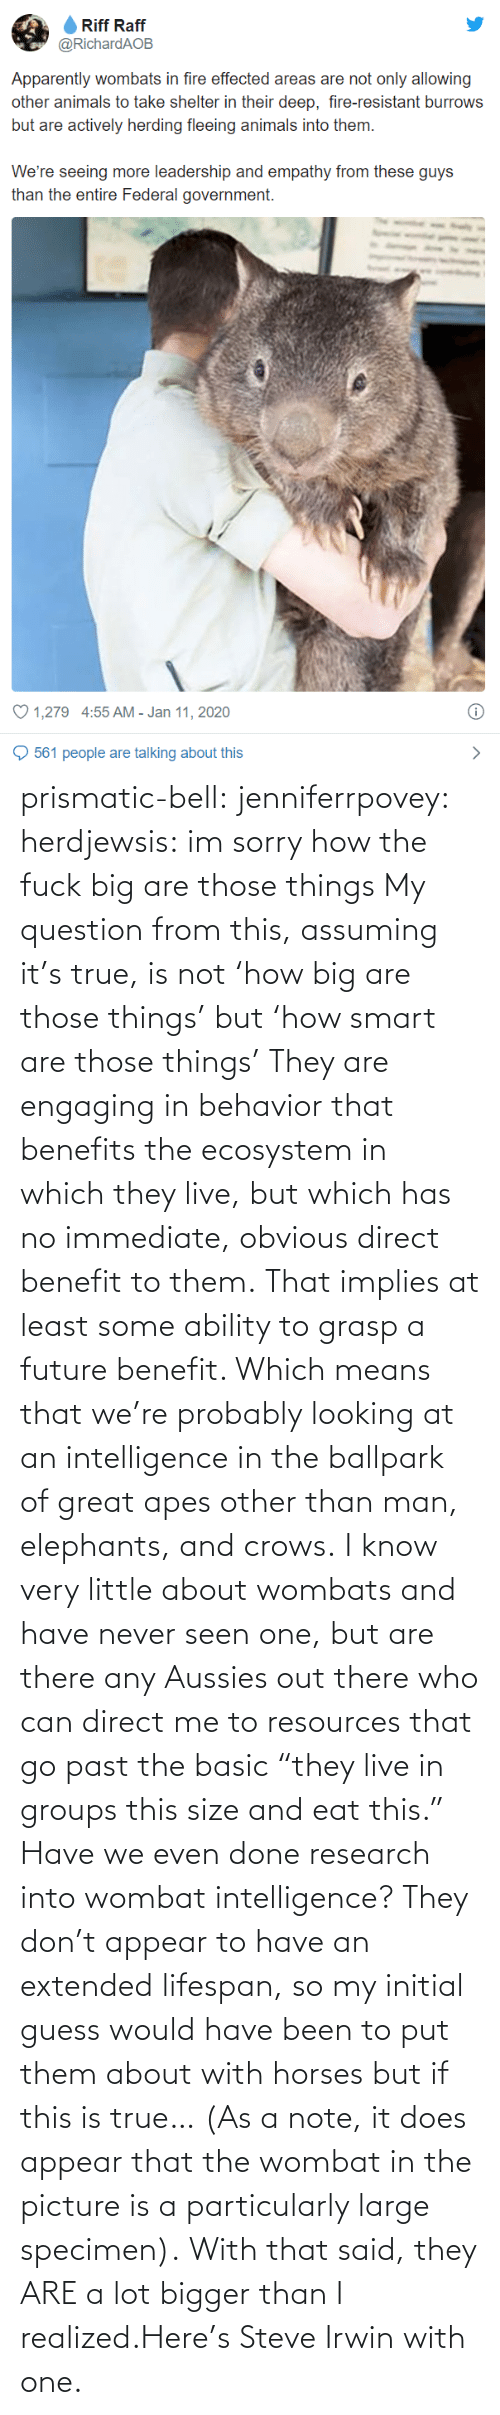 "know: prismatic-bell:  jenniferrpovey: herdjewsis: im sorry how the fuck big are those things My question from this, assuming it's true, is not 'how big are those things' but 'how smart are those things' They are engaging in behavior that benefits the ecosystem in which they live, but which has no immediate, obvious direct benefit to them. That implies at least some ability to grasp a future benefit. Which means that we're probably looking at an intelligence in the ballpark of great apes other than man, elephants, and crows. I know very little about wombats and have never seen one, but are there any Aussies out there who can direct me to resources that go past the basic ""they live in groups this size and eat this."" Have we even done research into wombat intelligence? They don't appear to have an extended lifespan, so my initial guess would have been to put them about with horses but if this is true… (As a note, it does appear that the wombat in the picture is a particularly large specimen).  With that said, they ARE a lot bigger than I realized.Here's Steve Irwin with one."